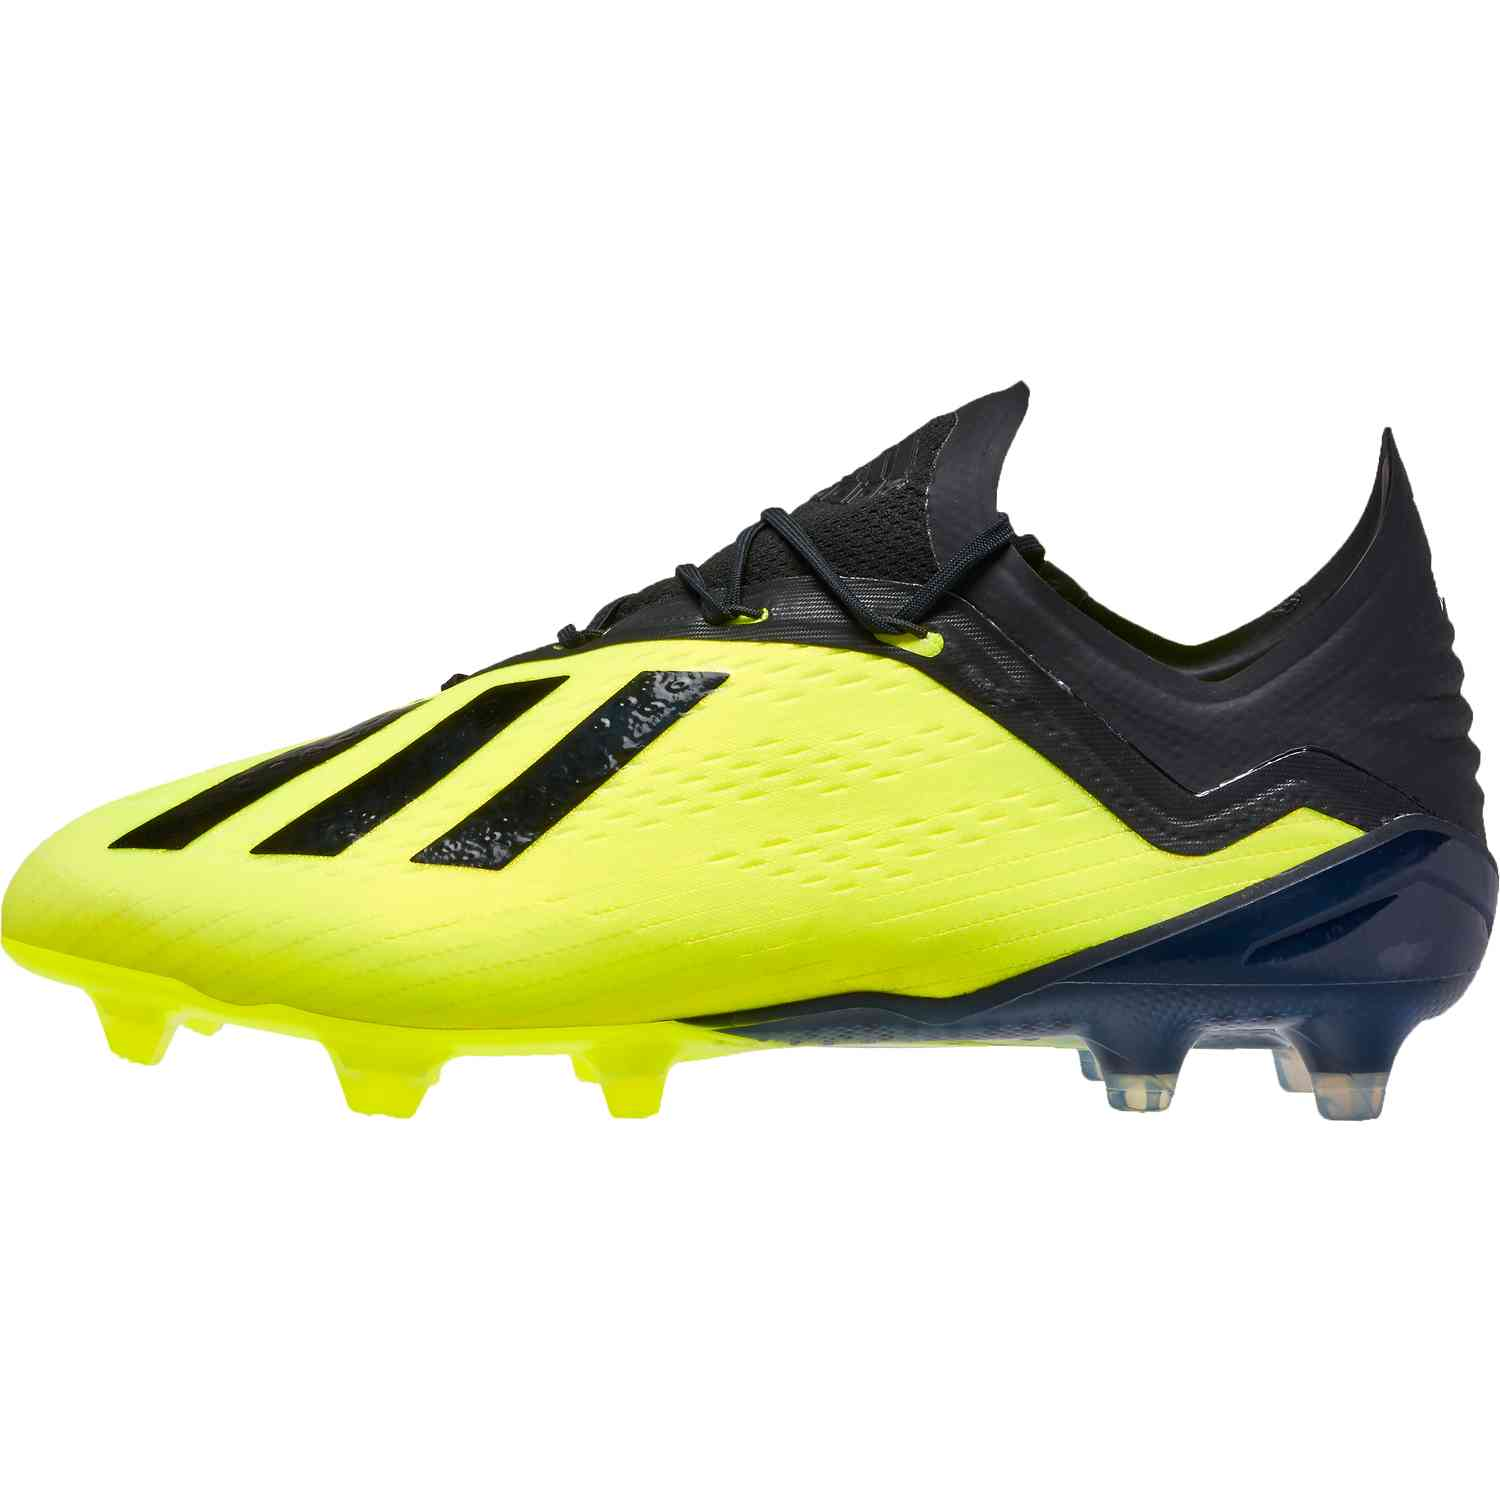 official photos 45d73 27827 adidas X 18.1 FG Soccer Cleat- Solar Yellow/Black/White | Soccer Unlimited  USA